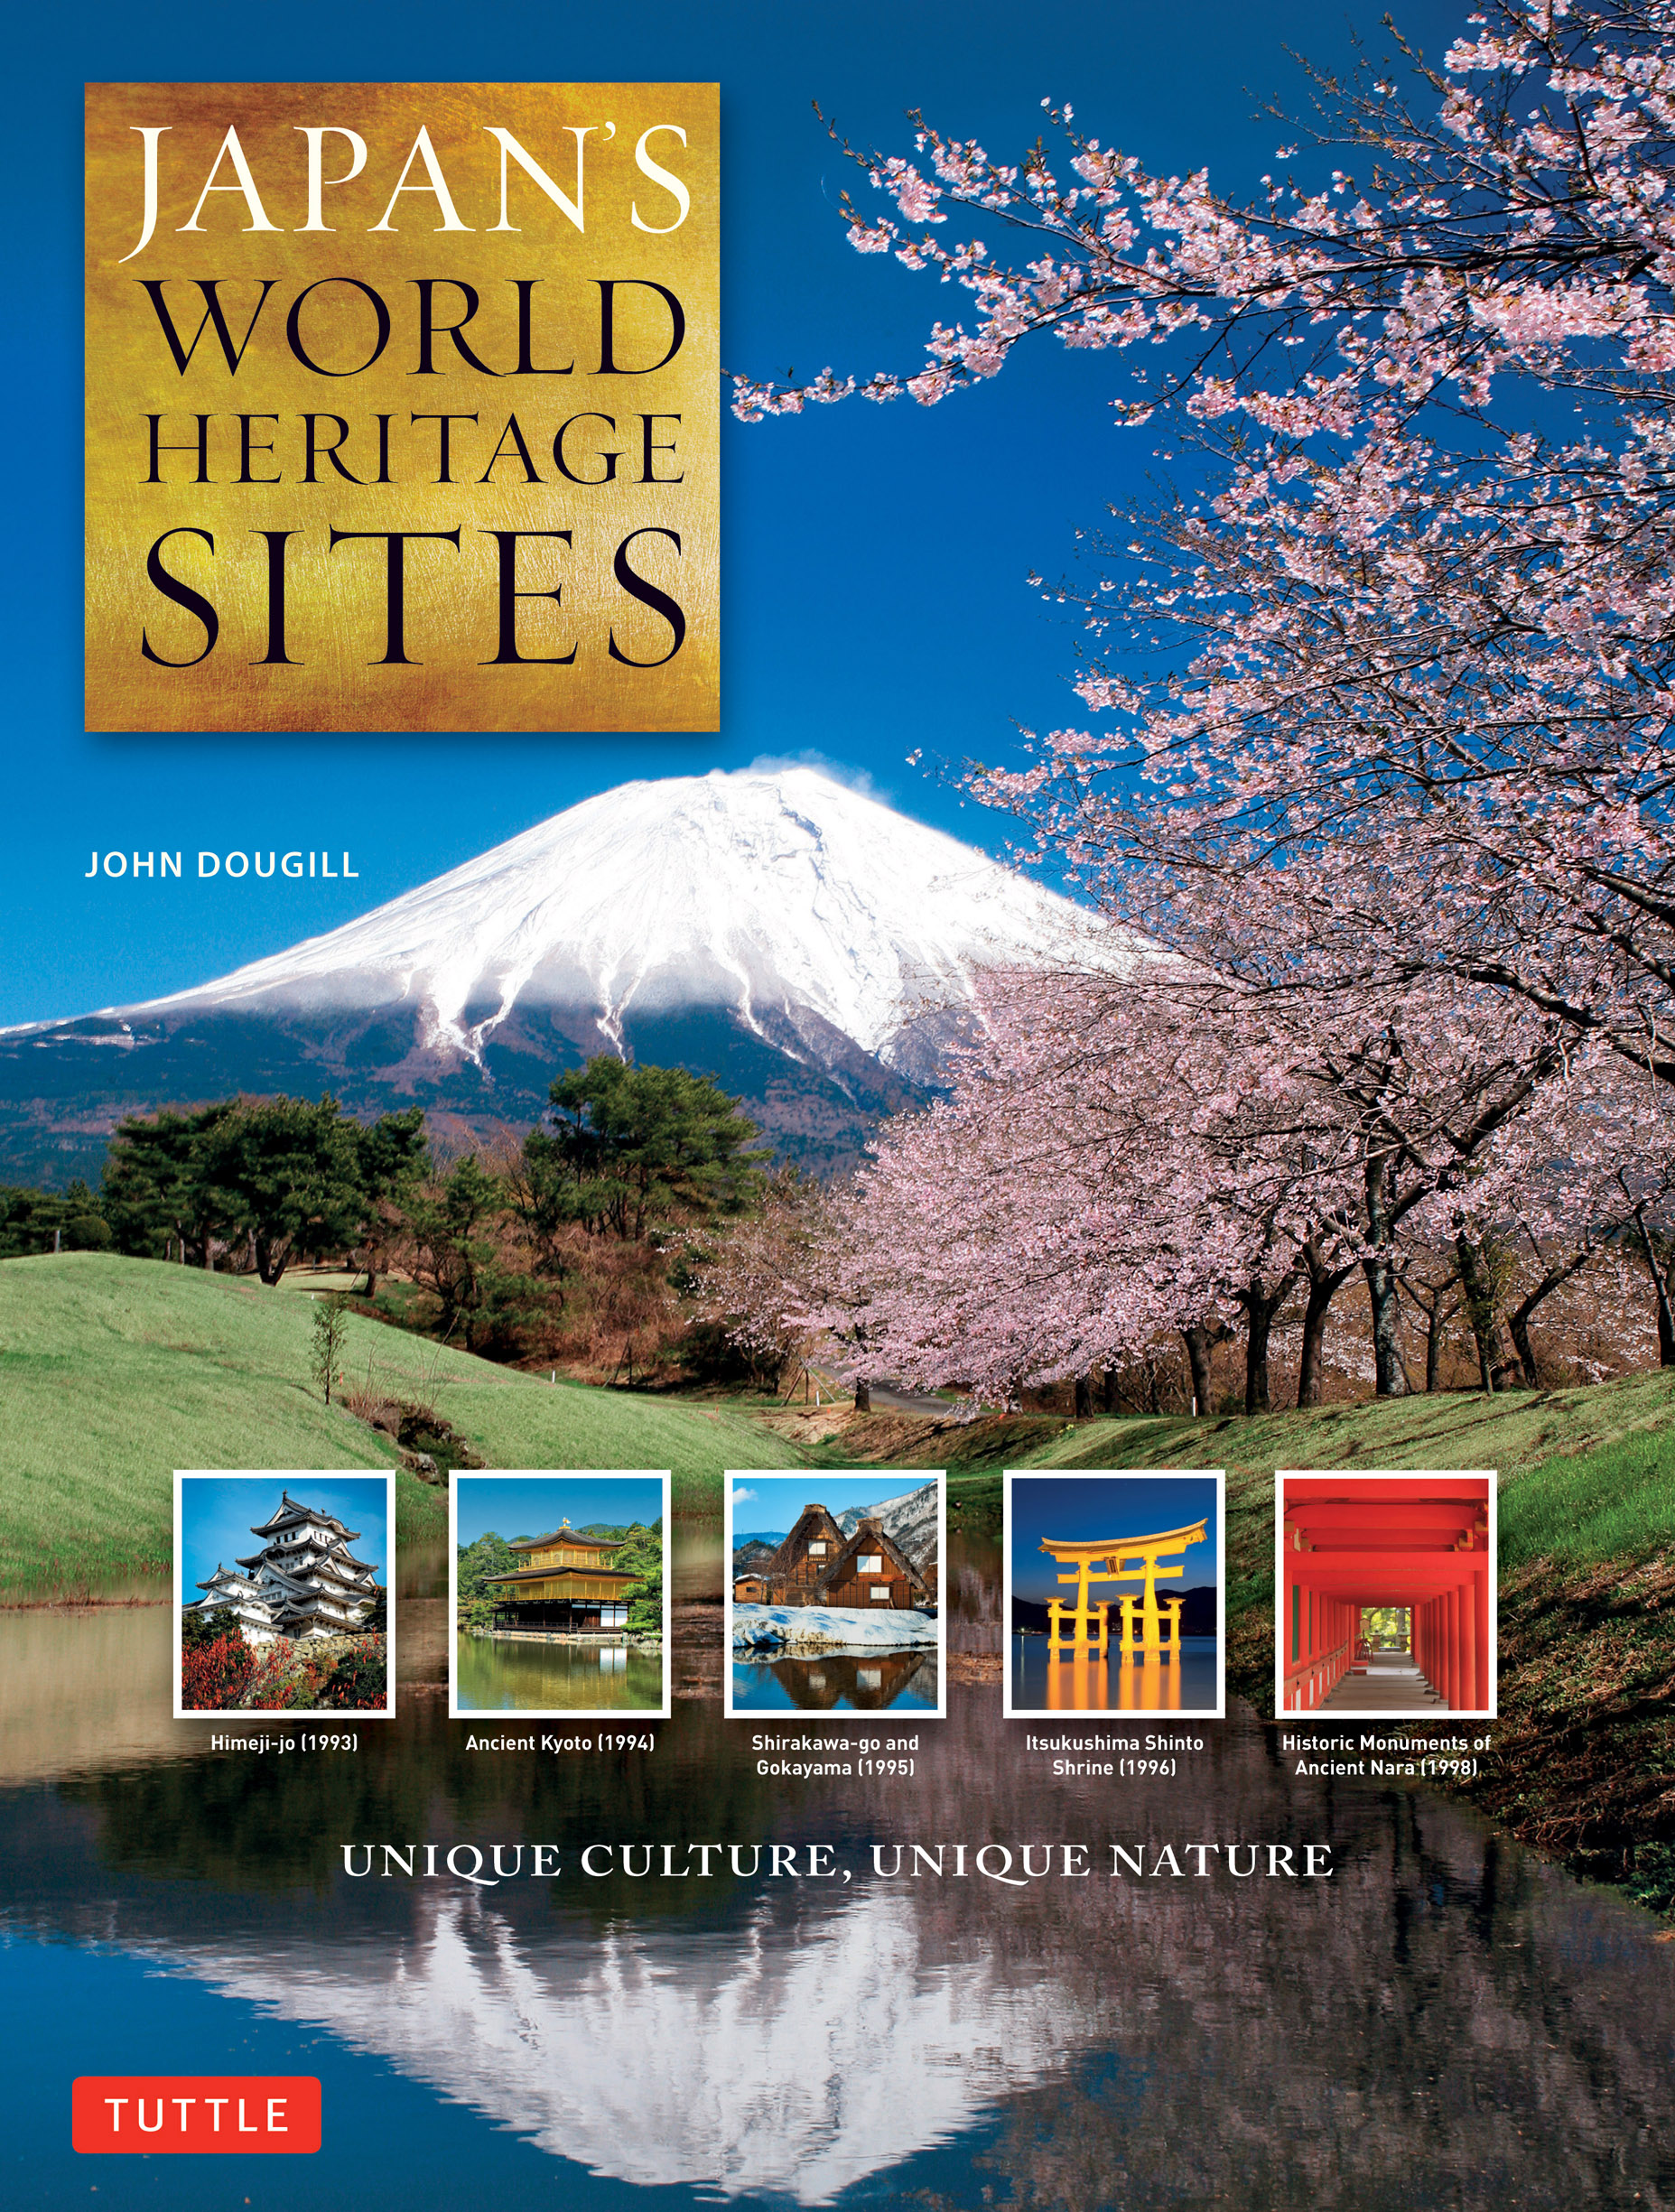 Japans-world-heritage-sites-9784805312858_hr